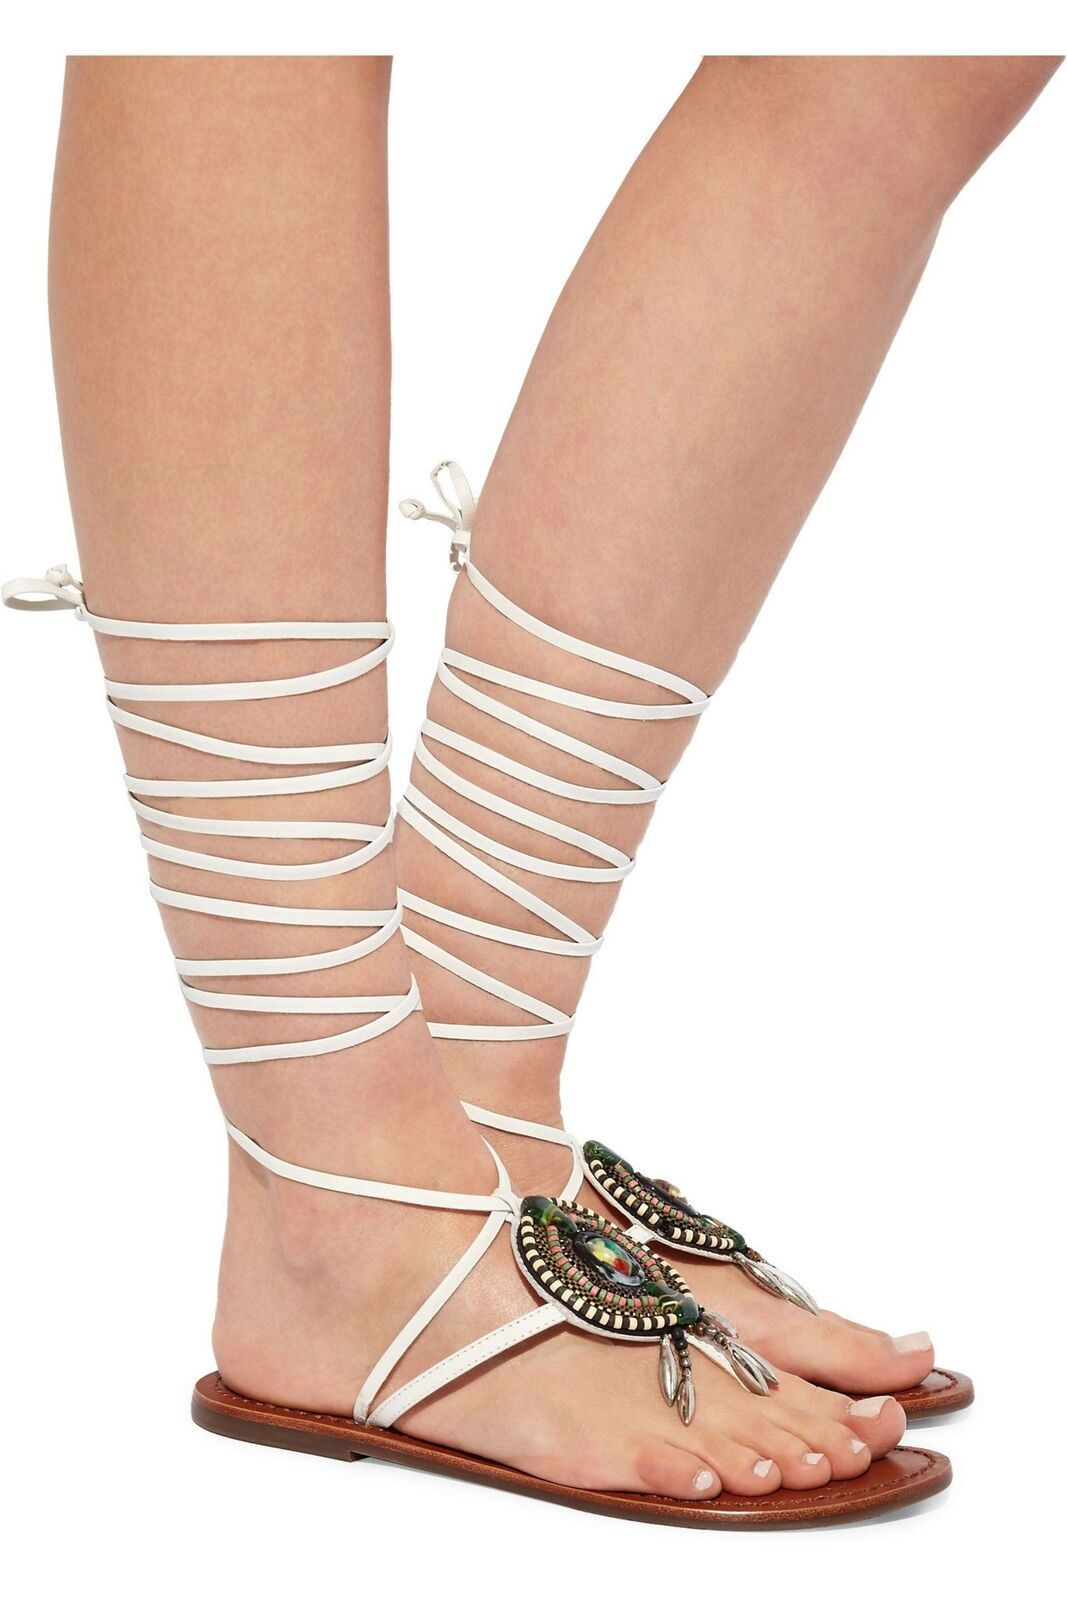 Schutz Centi Pearl White Embellished Leather Flat Tie Up Beaded Design Sandals